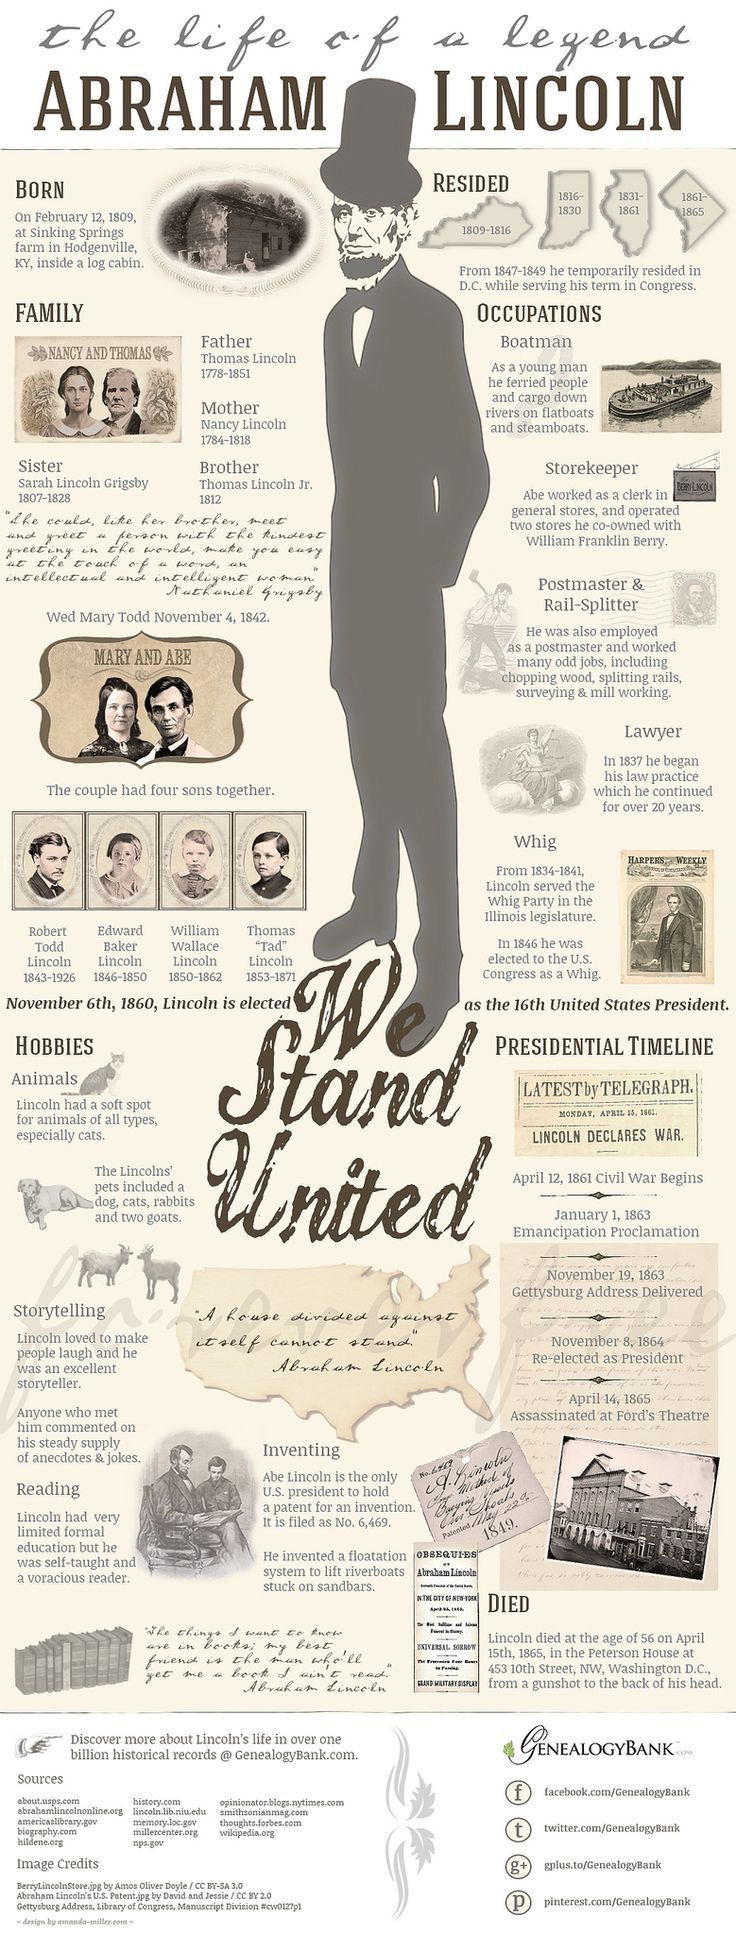 a biography and life of abraham lincoln 16th president of the united states Lincoln, abraham, a representative from illinois and 16th president of the united states born in hardin county, ky, february 12, 1809 moved with his parents to a.